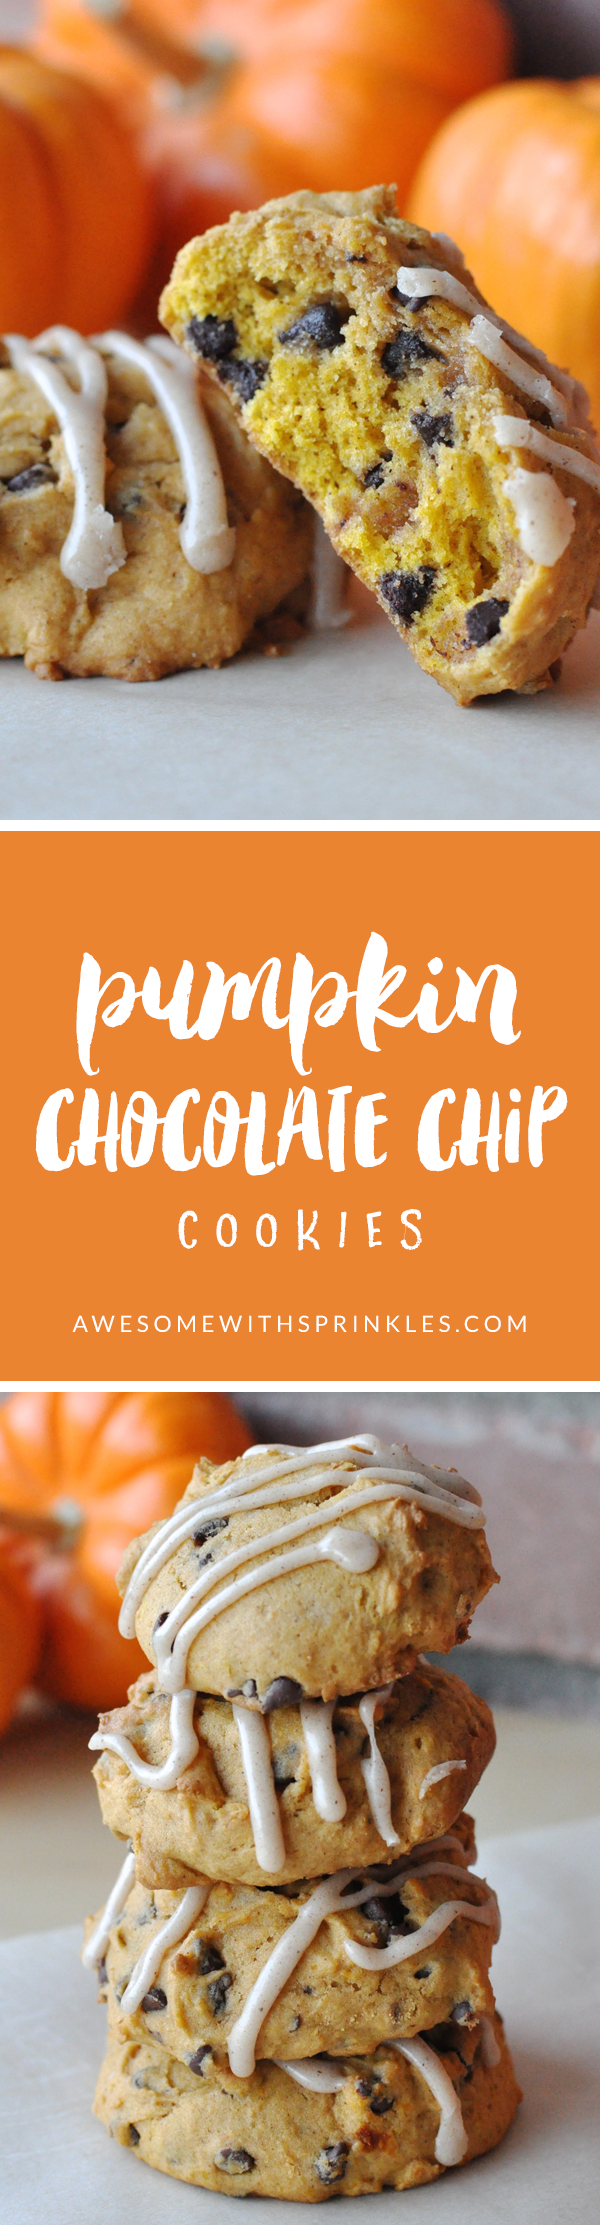 Pumpkin Chocolate Chip Cookies | Awesome with Sprinkles